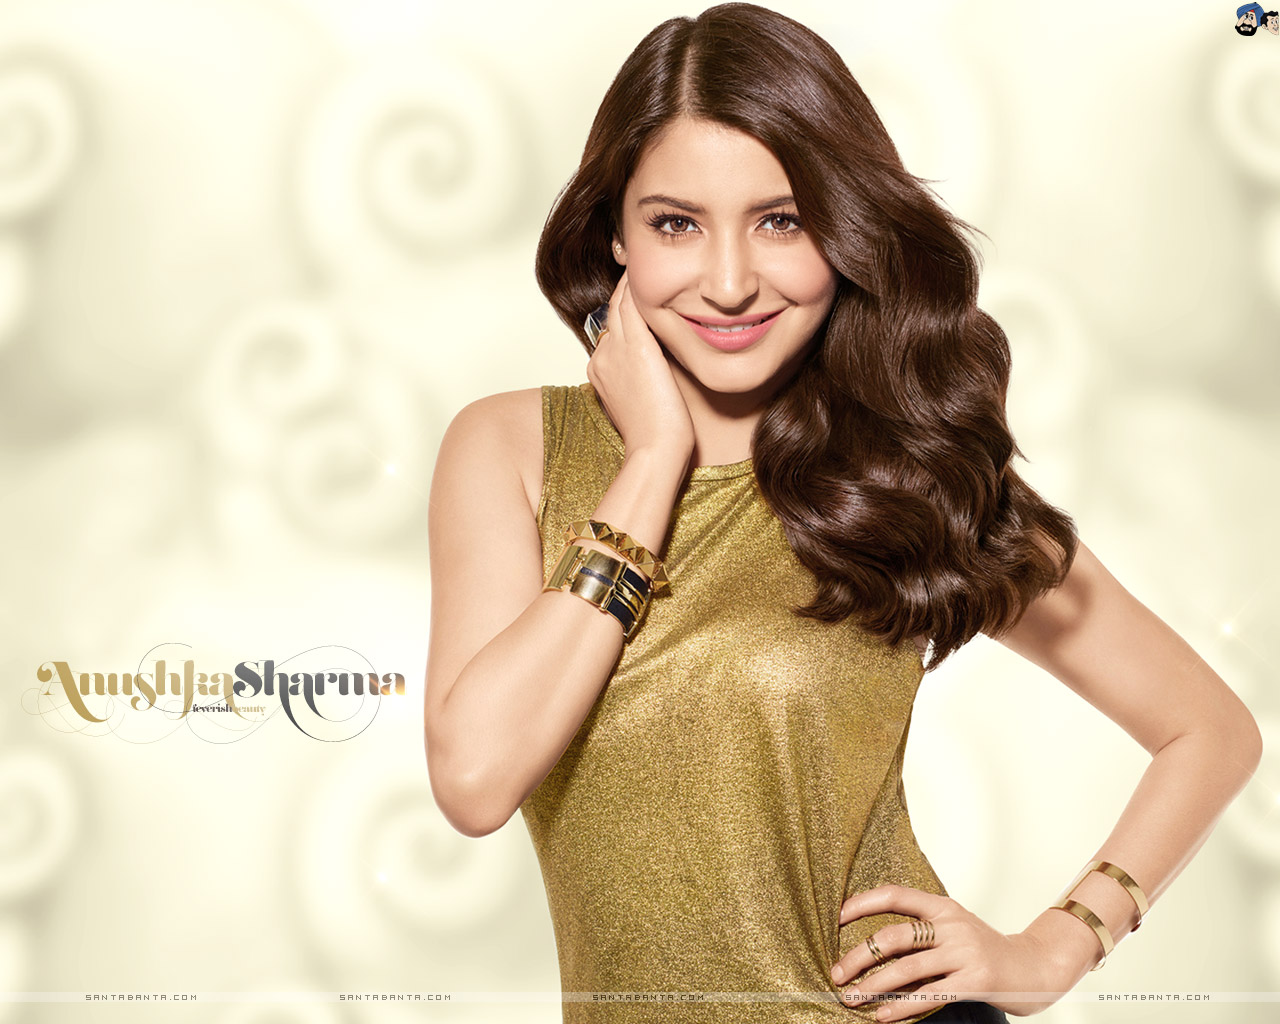 Google Image Cute Wallpapers Anushka Sharma Hd Wallpapers Most Beautiful Places In